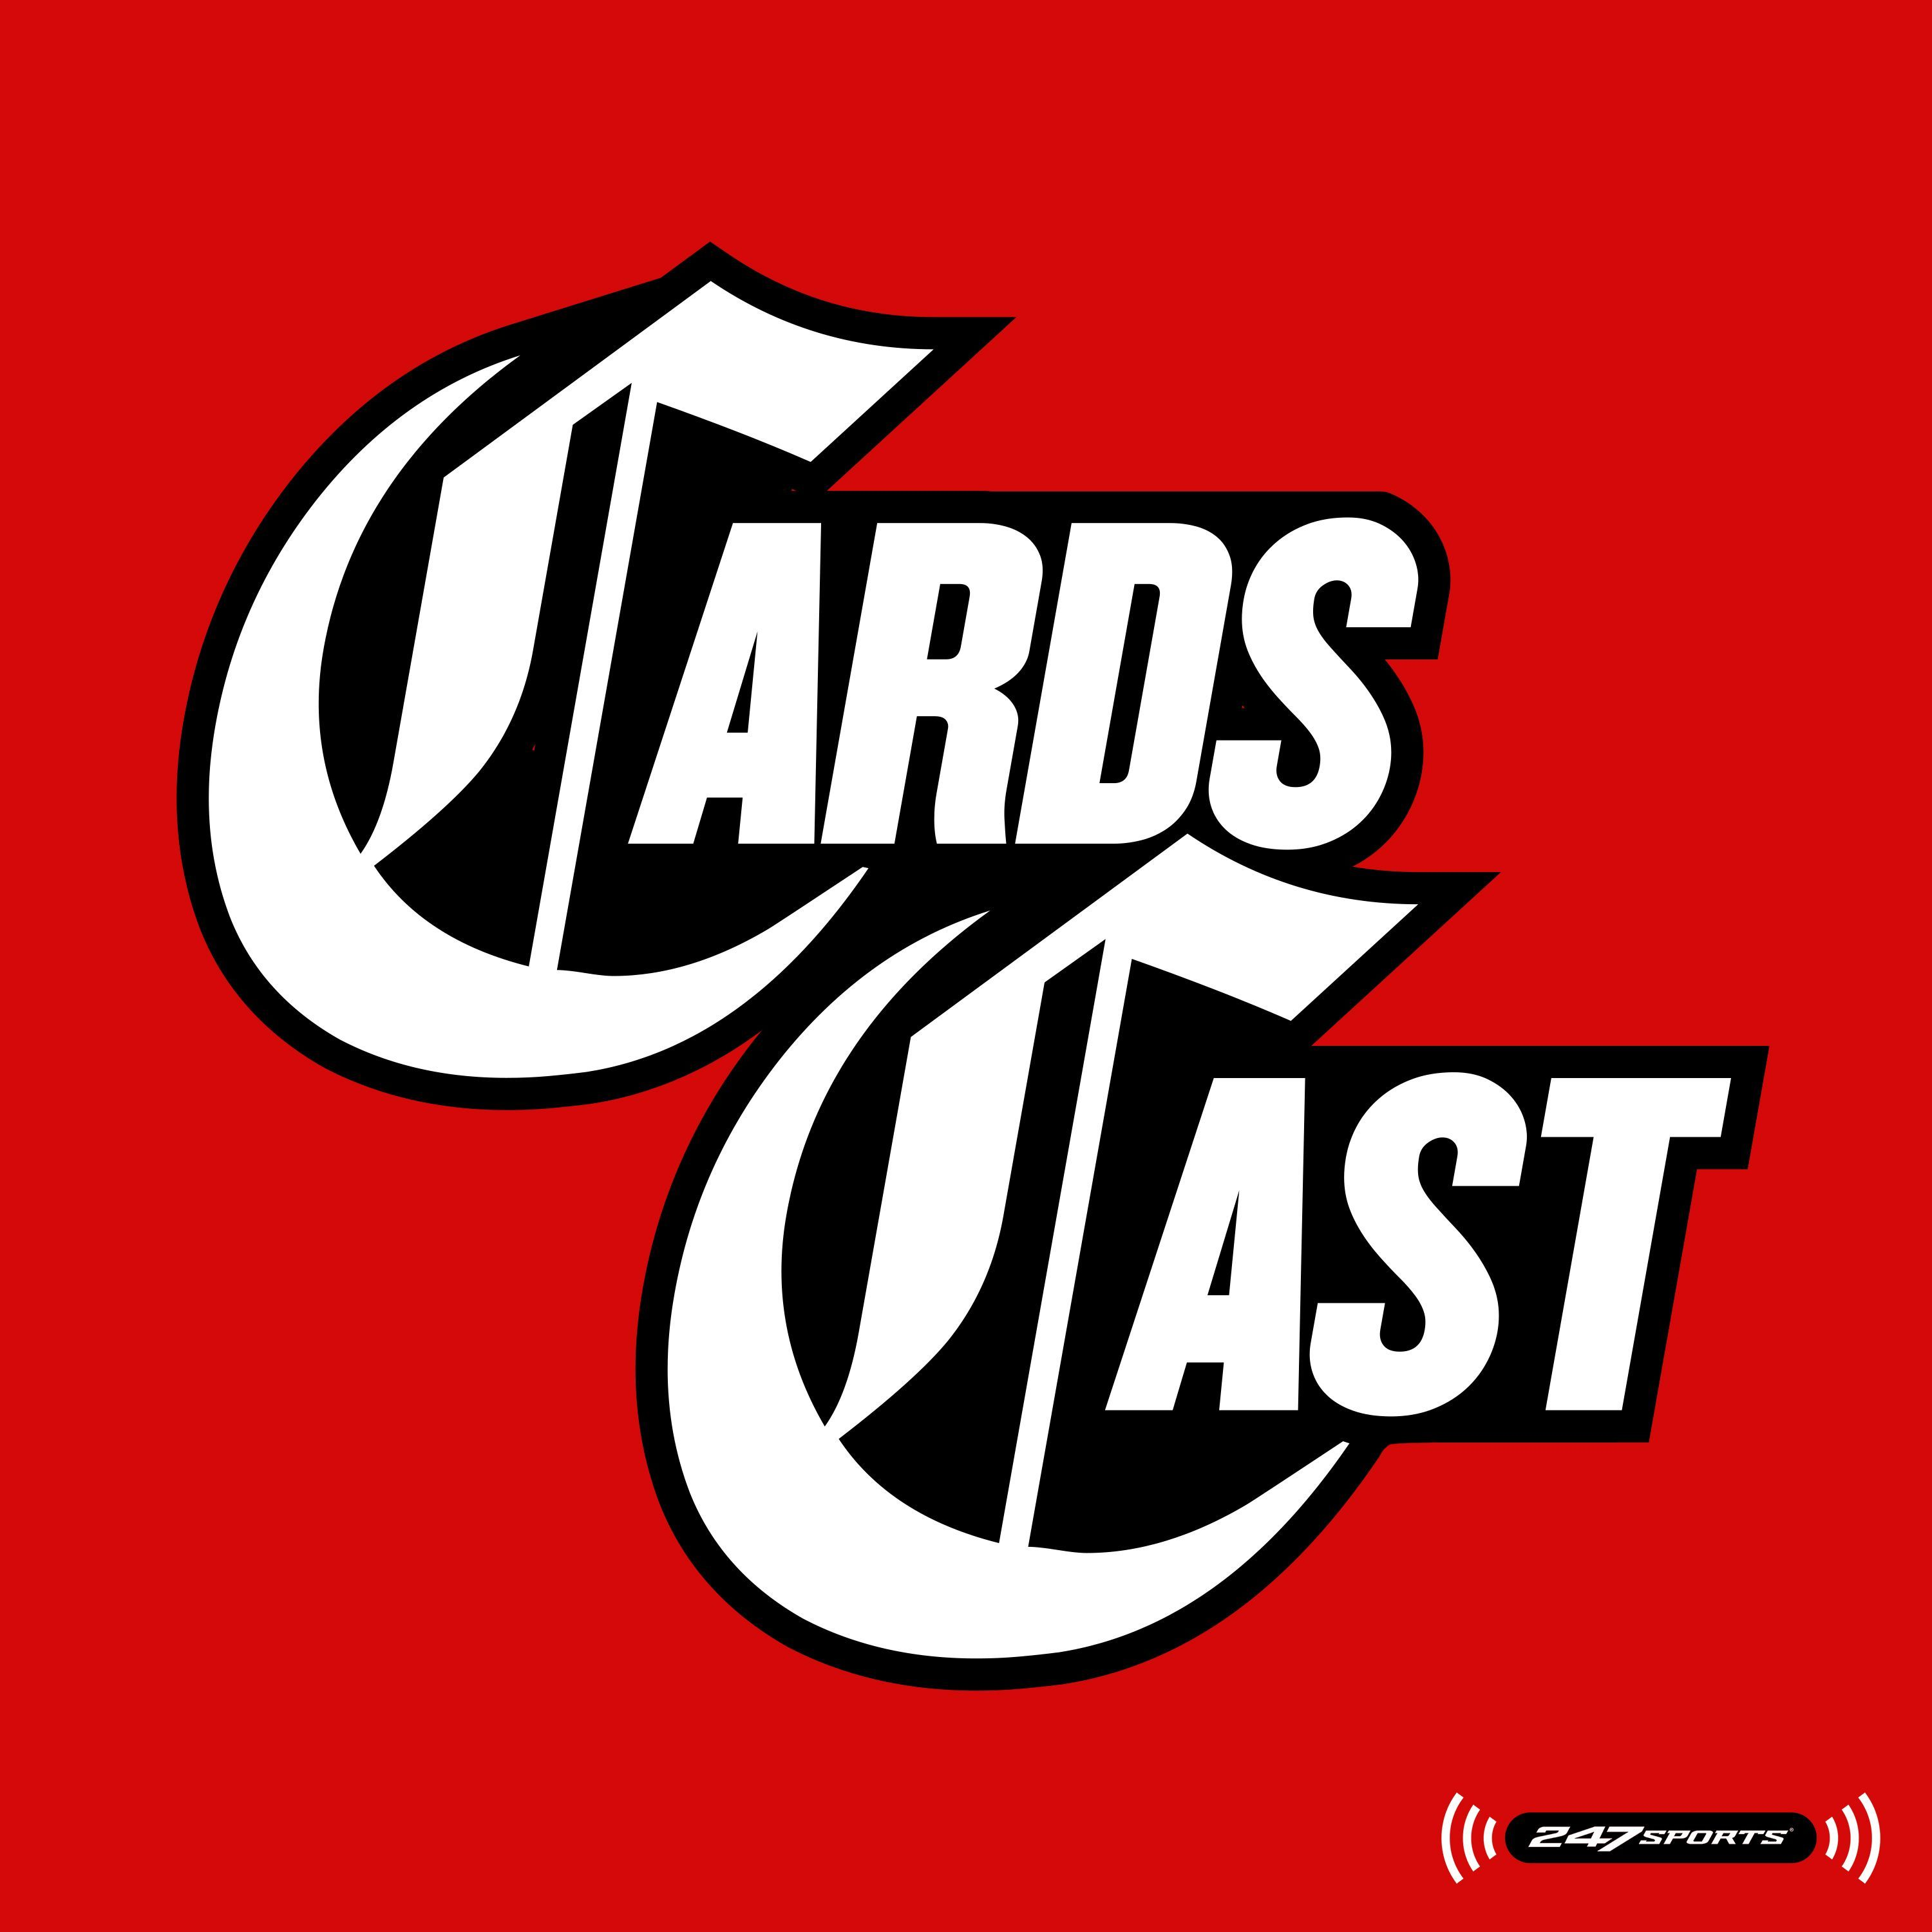 Cards Cast: Cards beat Cats; Football adding offensive linemen